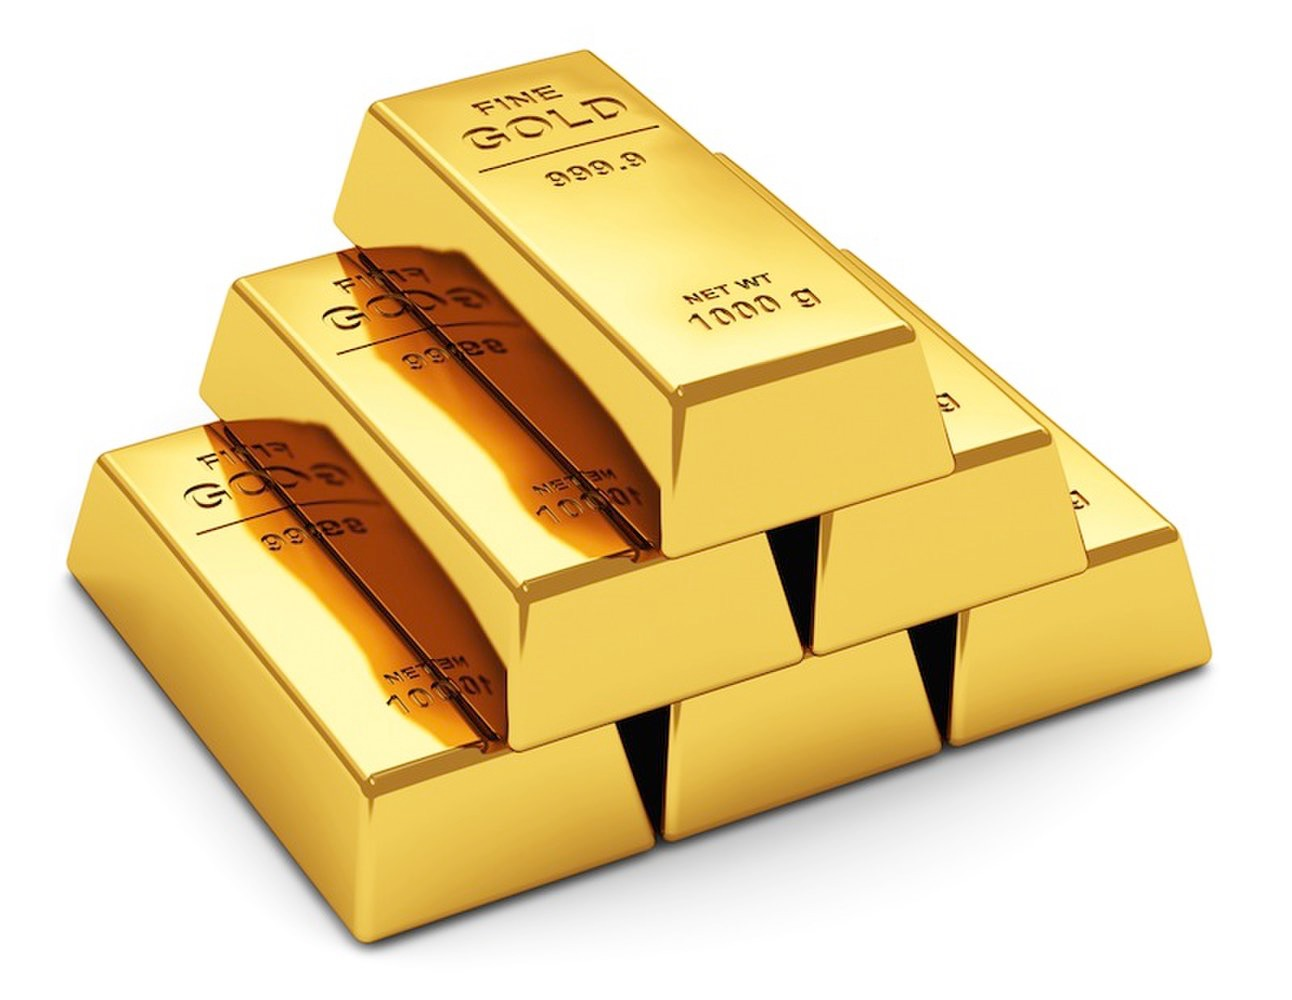 British man loses £200,000 to Ghanaian gold scammers